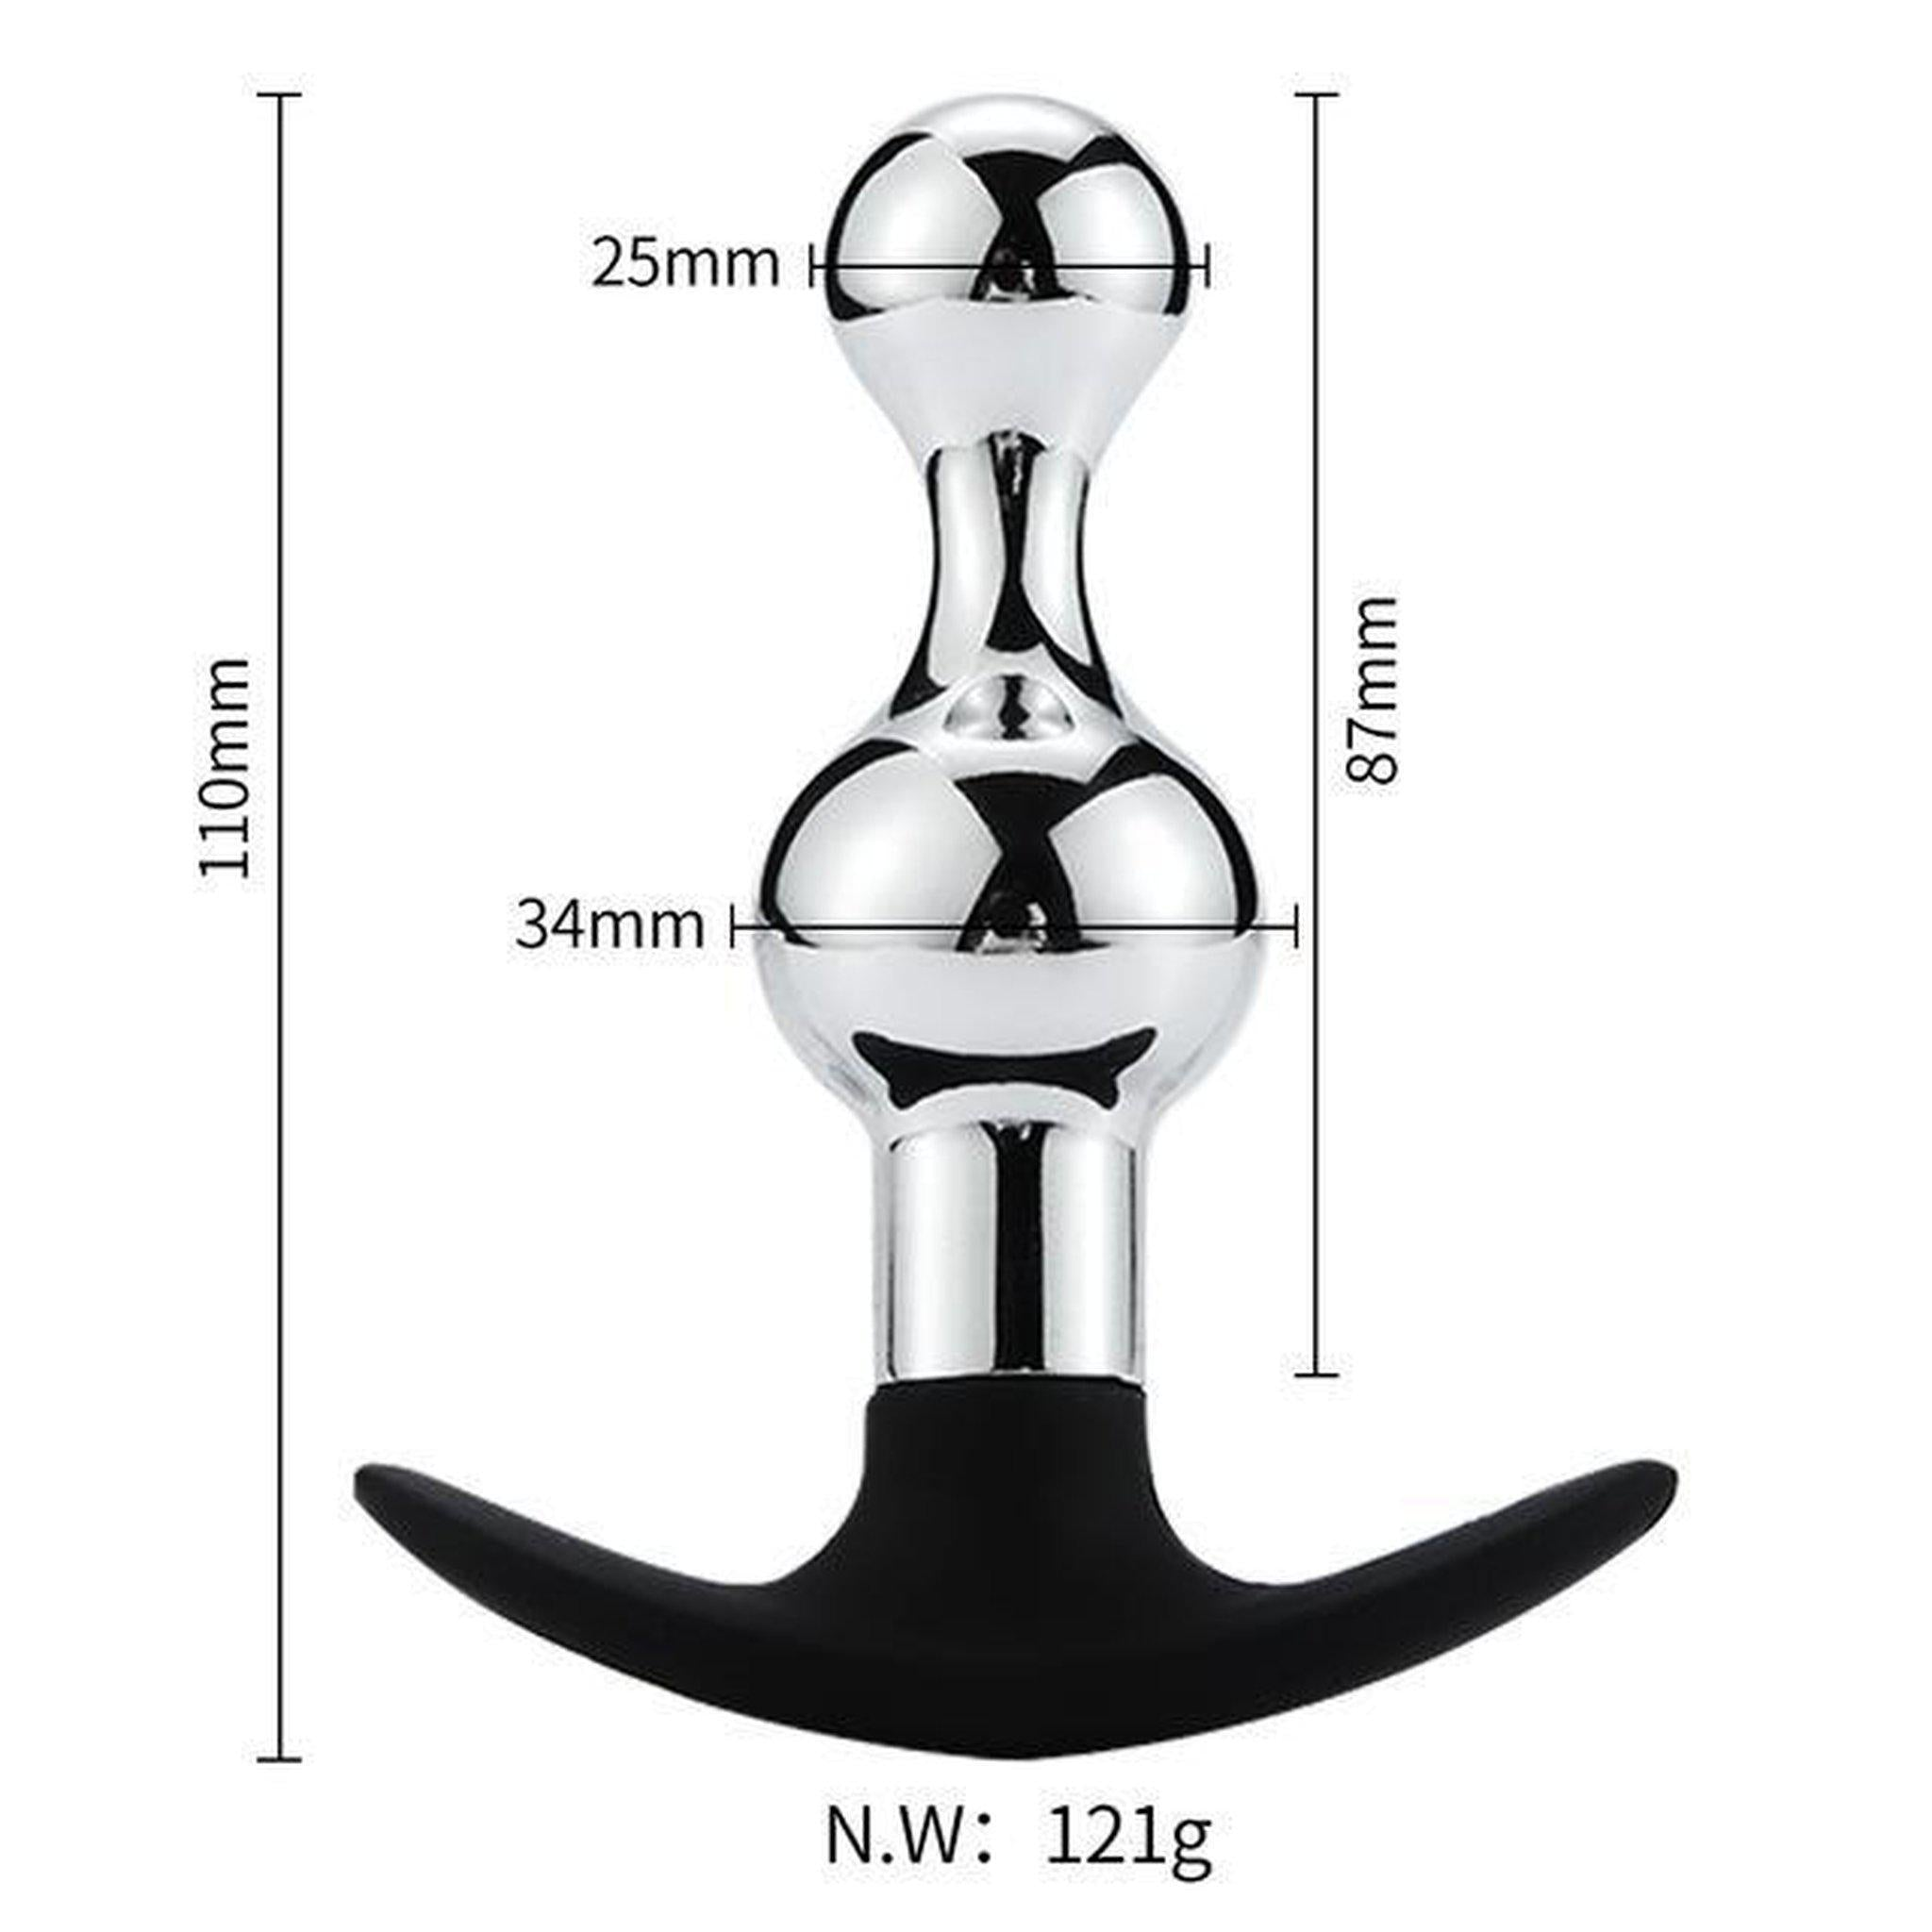 Stainless Steel Anal Plug with Sucker or T-Handle-Good Girl xox-F2-buy-bdsm-bondage-gear-tools-toys-online-good-girl-xox